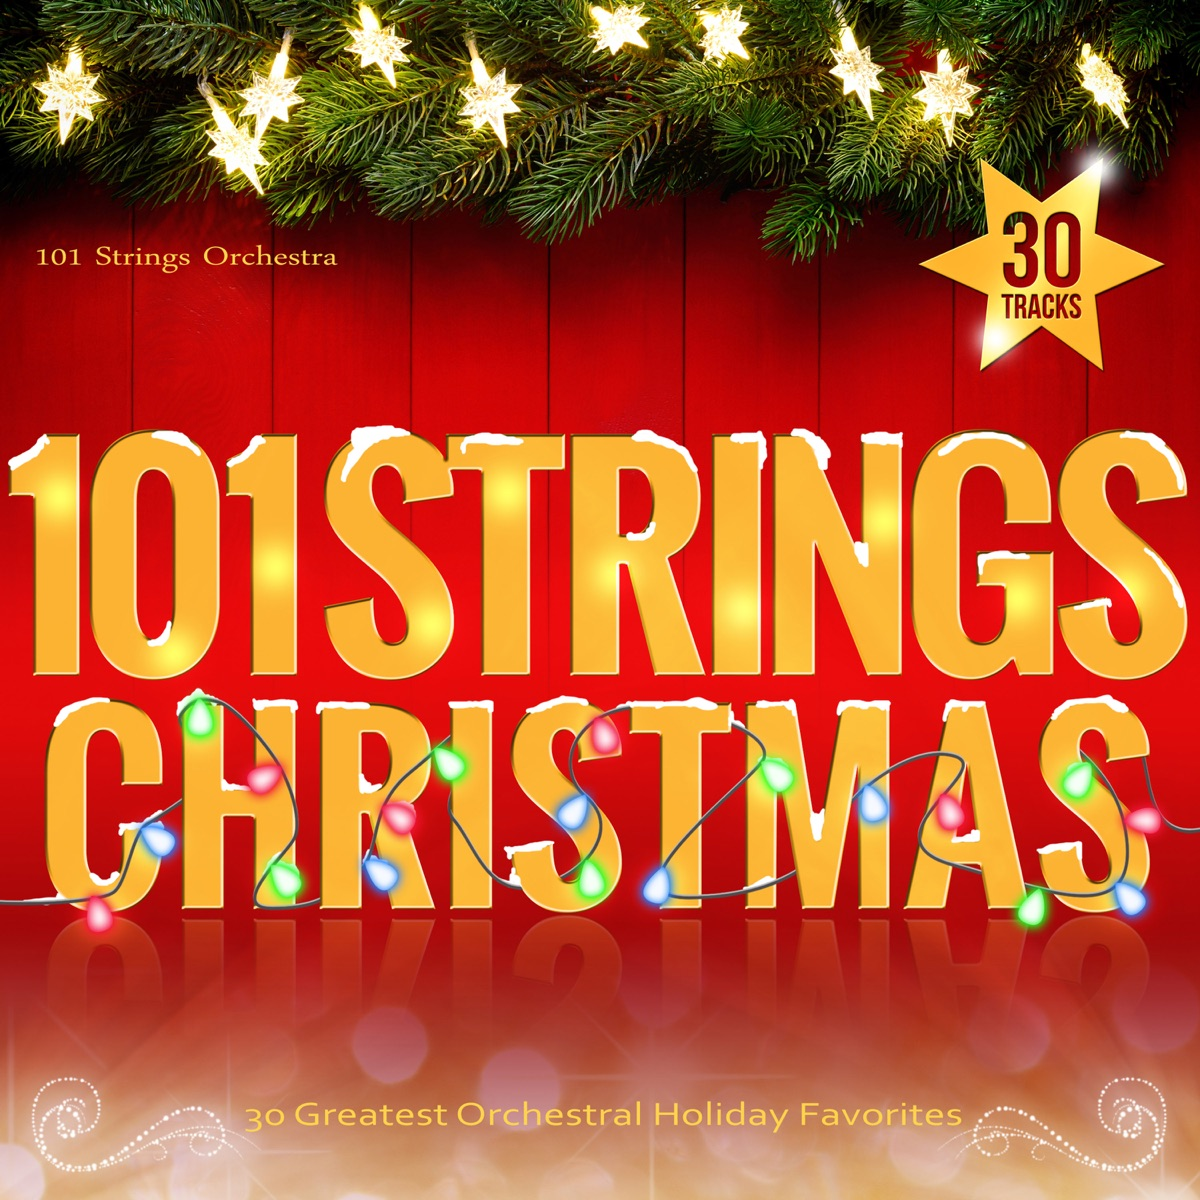 101 Strings Christmas - 30 Greatest Orchestral Holiday